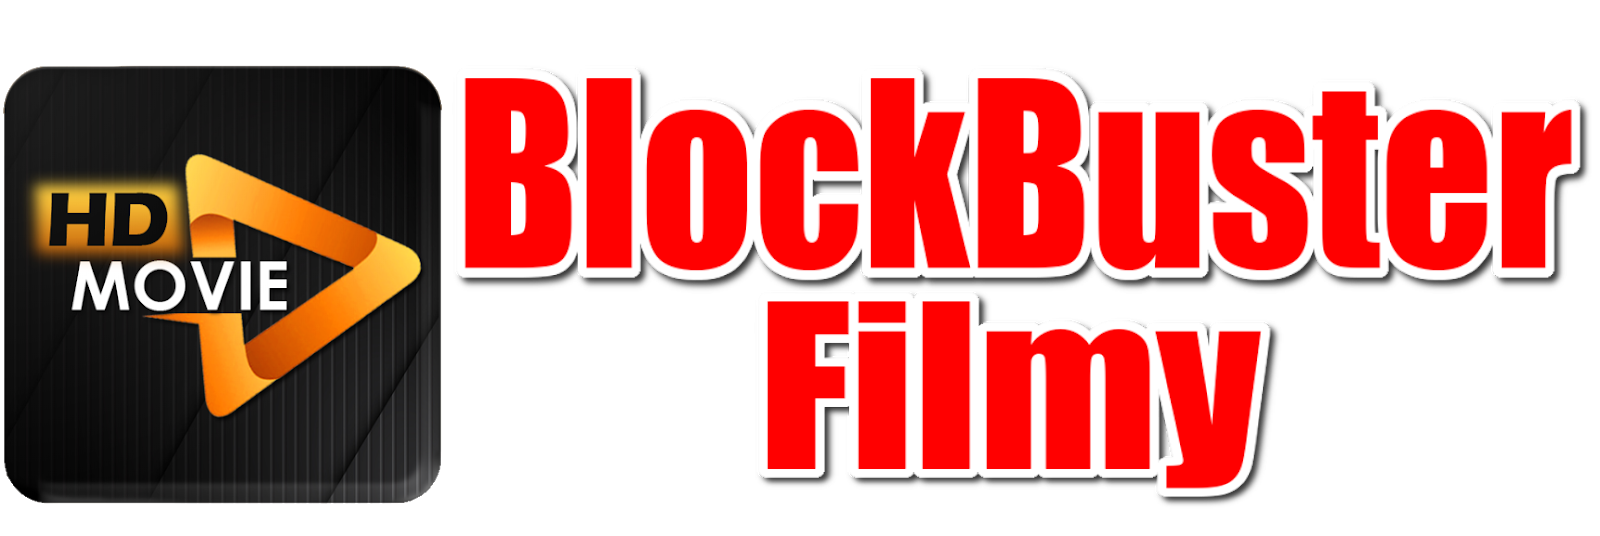 Blockbuster Filmy - Blockbuster Filmy 2021 - Full Hd Movies